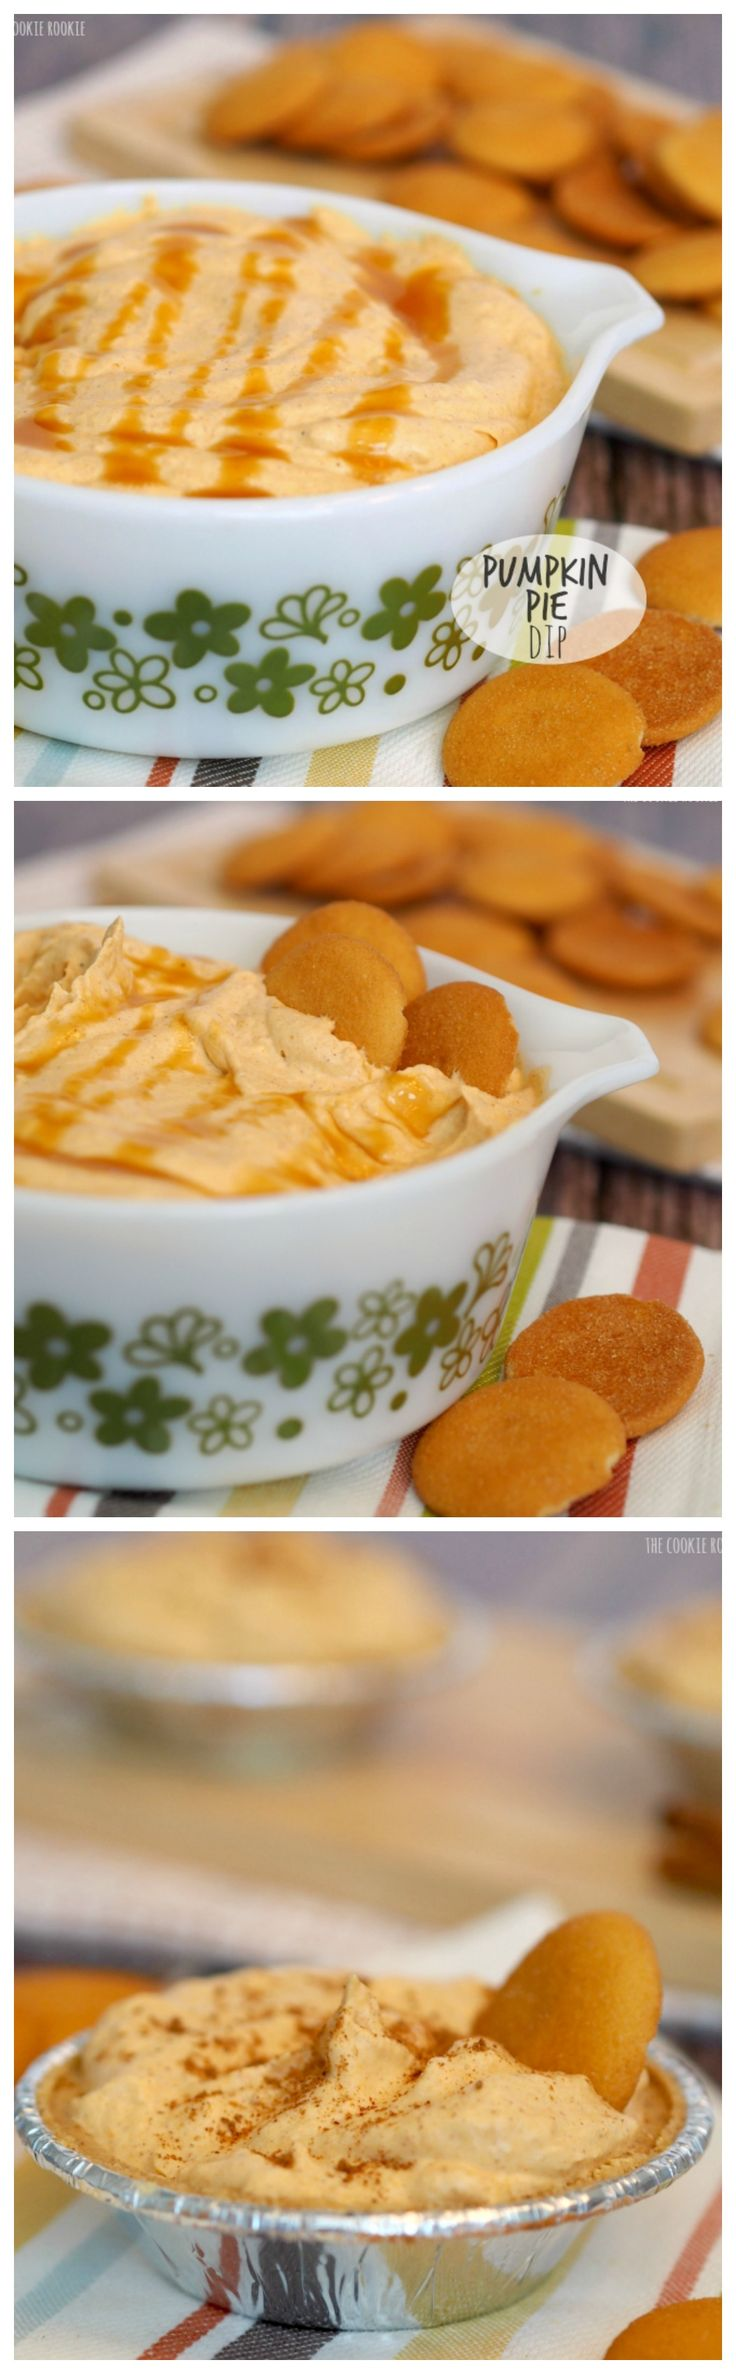 Pumpkin Pie Dip | Recipe